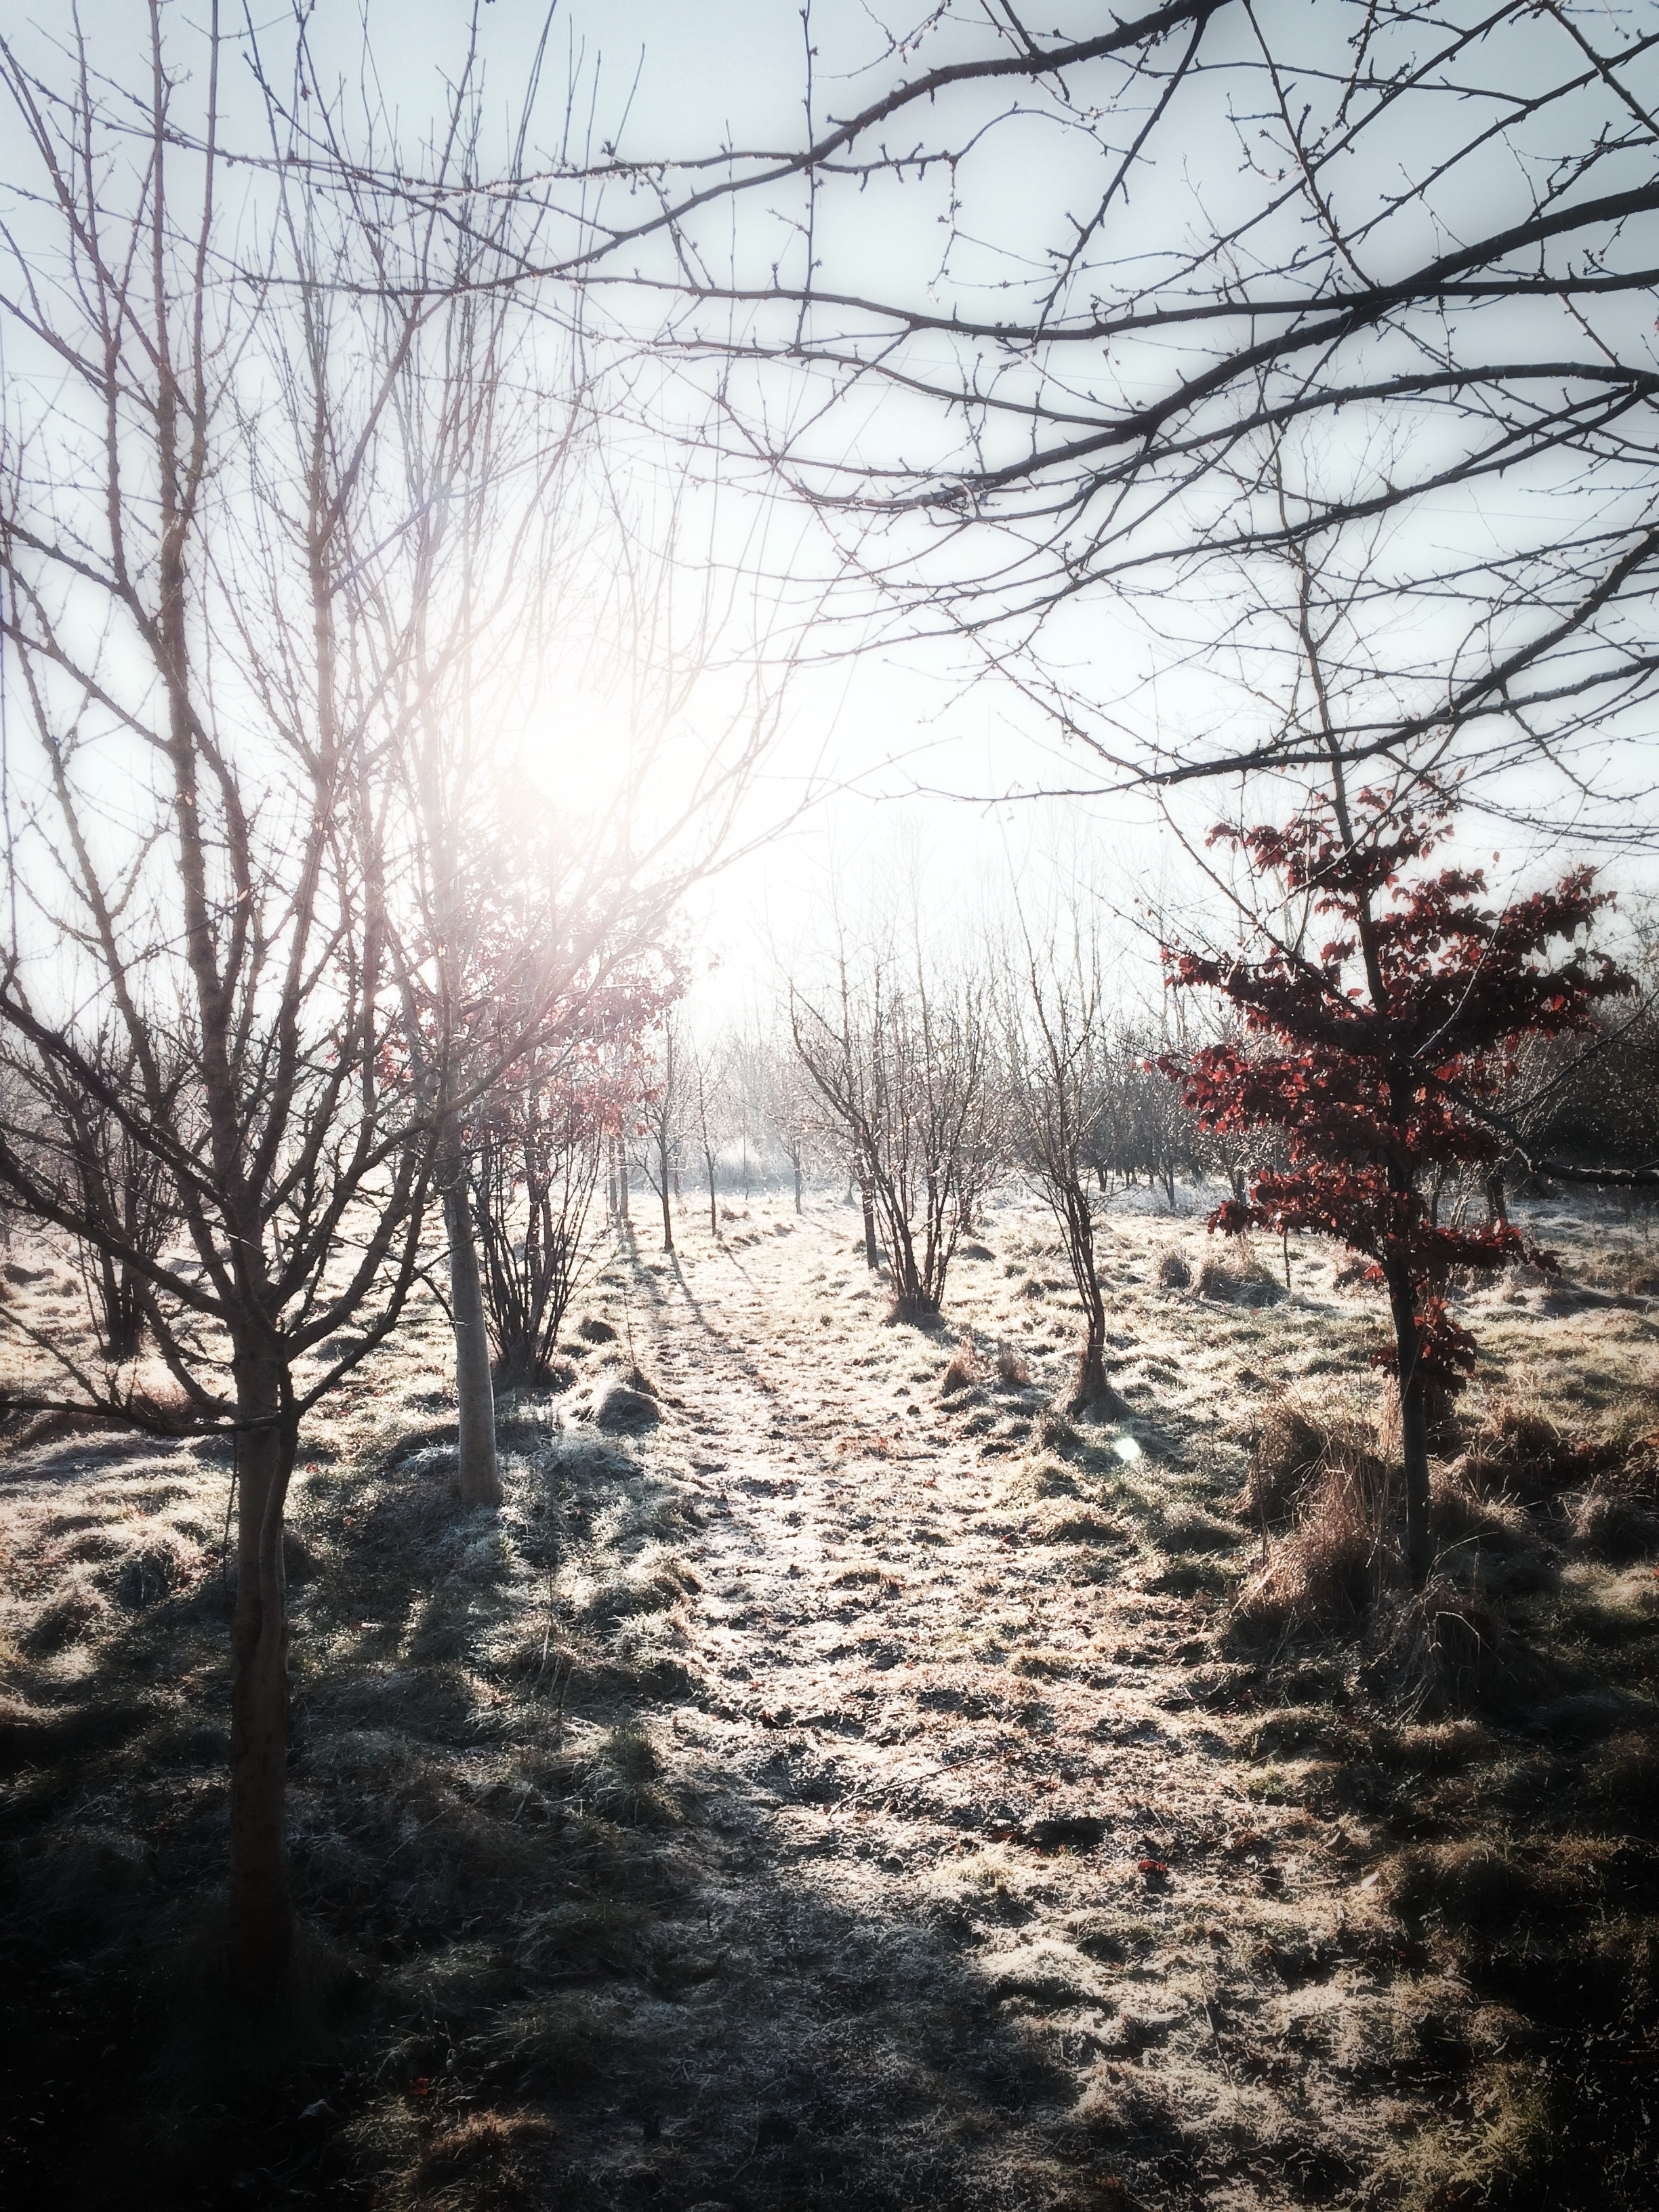 An orchard path with grass and branches covered in frost